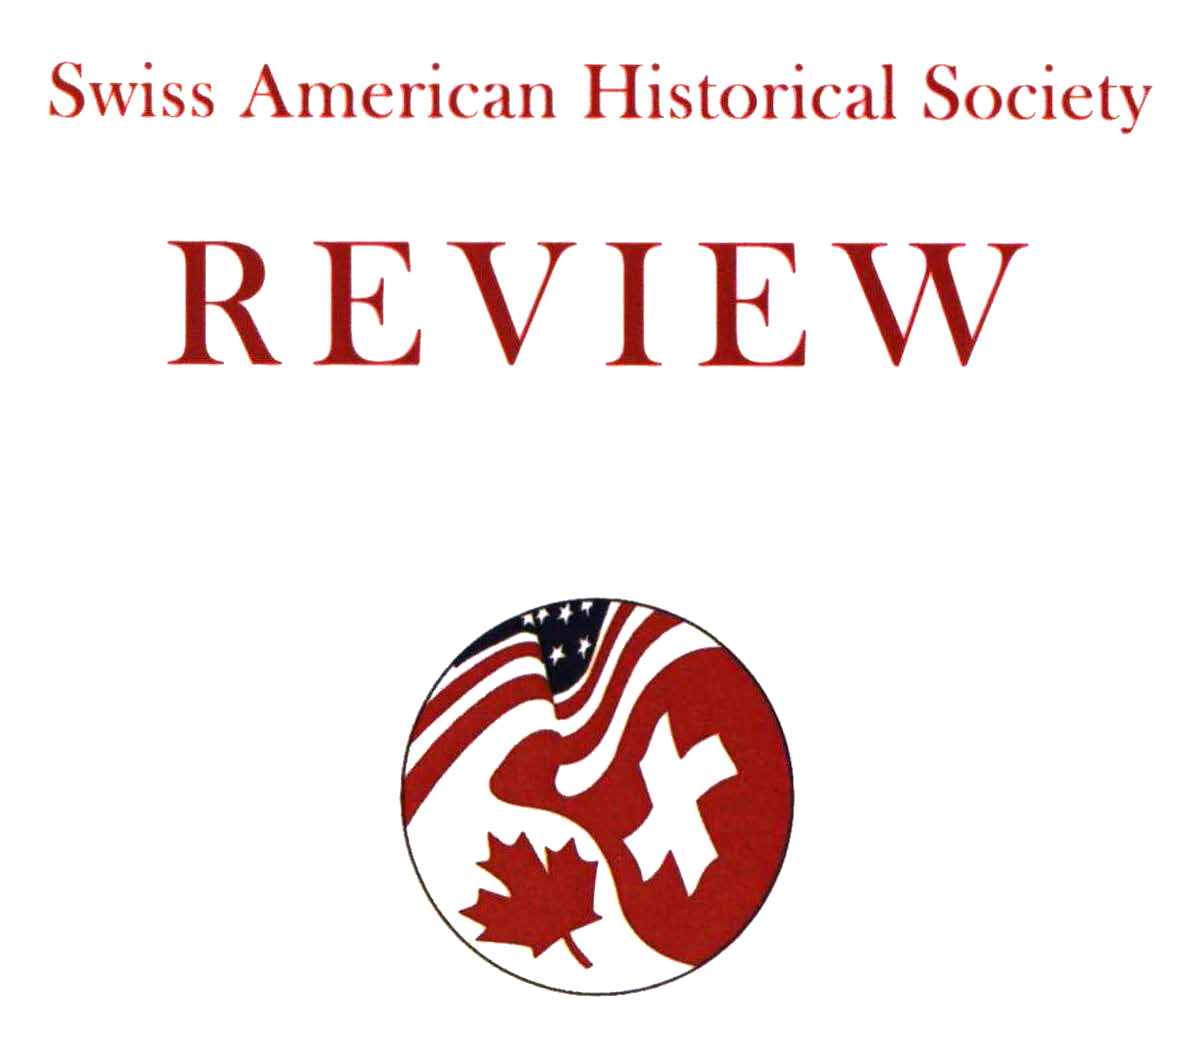 Swiss American Historical Society Review